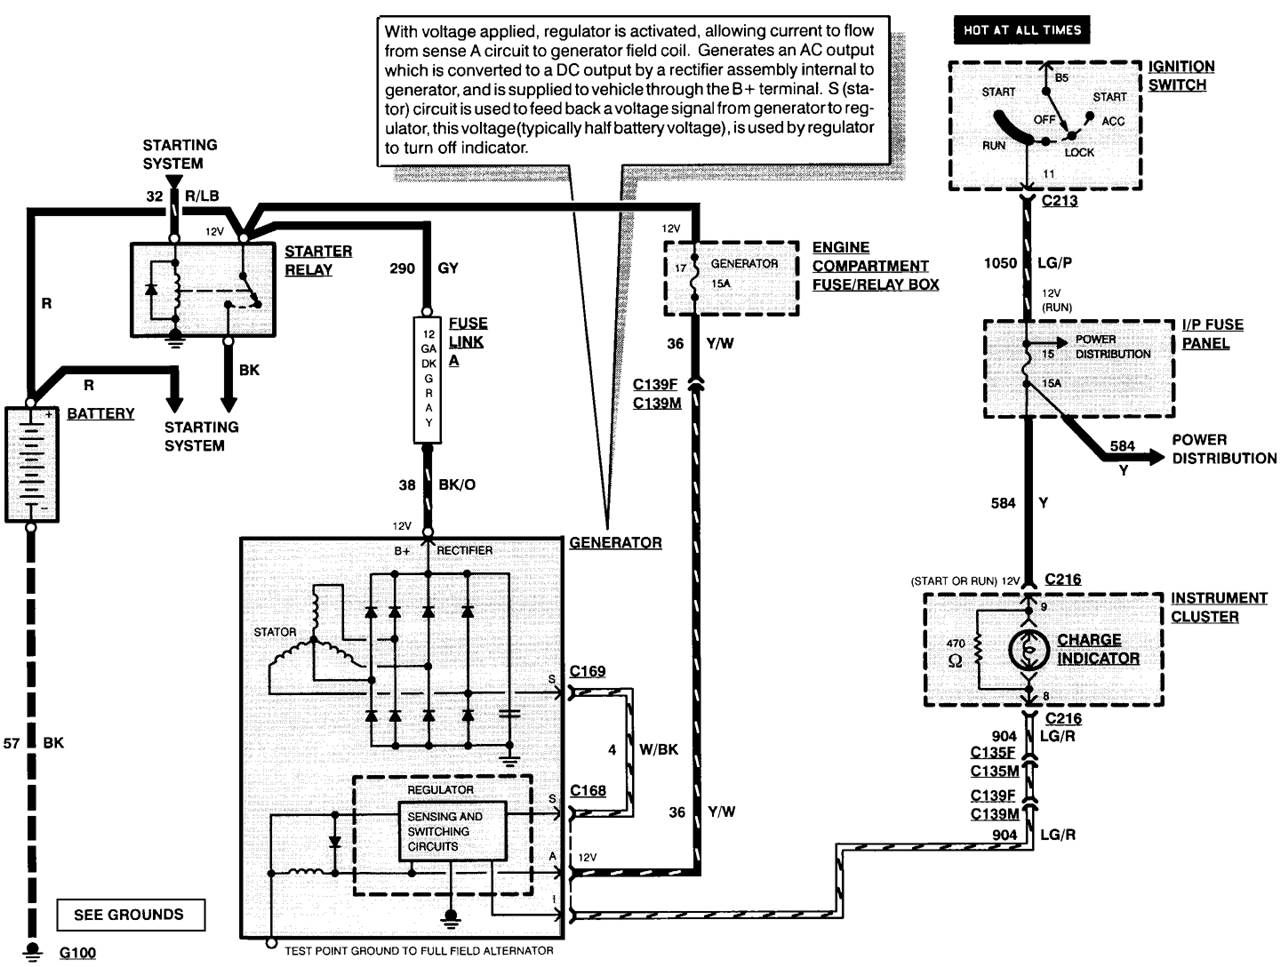 Ford alternator wiring diagram internal regulator ford alternator wiring diagrams carsut understand cars and Ford 3 Wire Alternator Diagram at alyssarenee.co